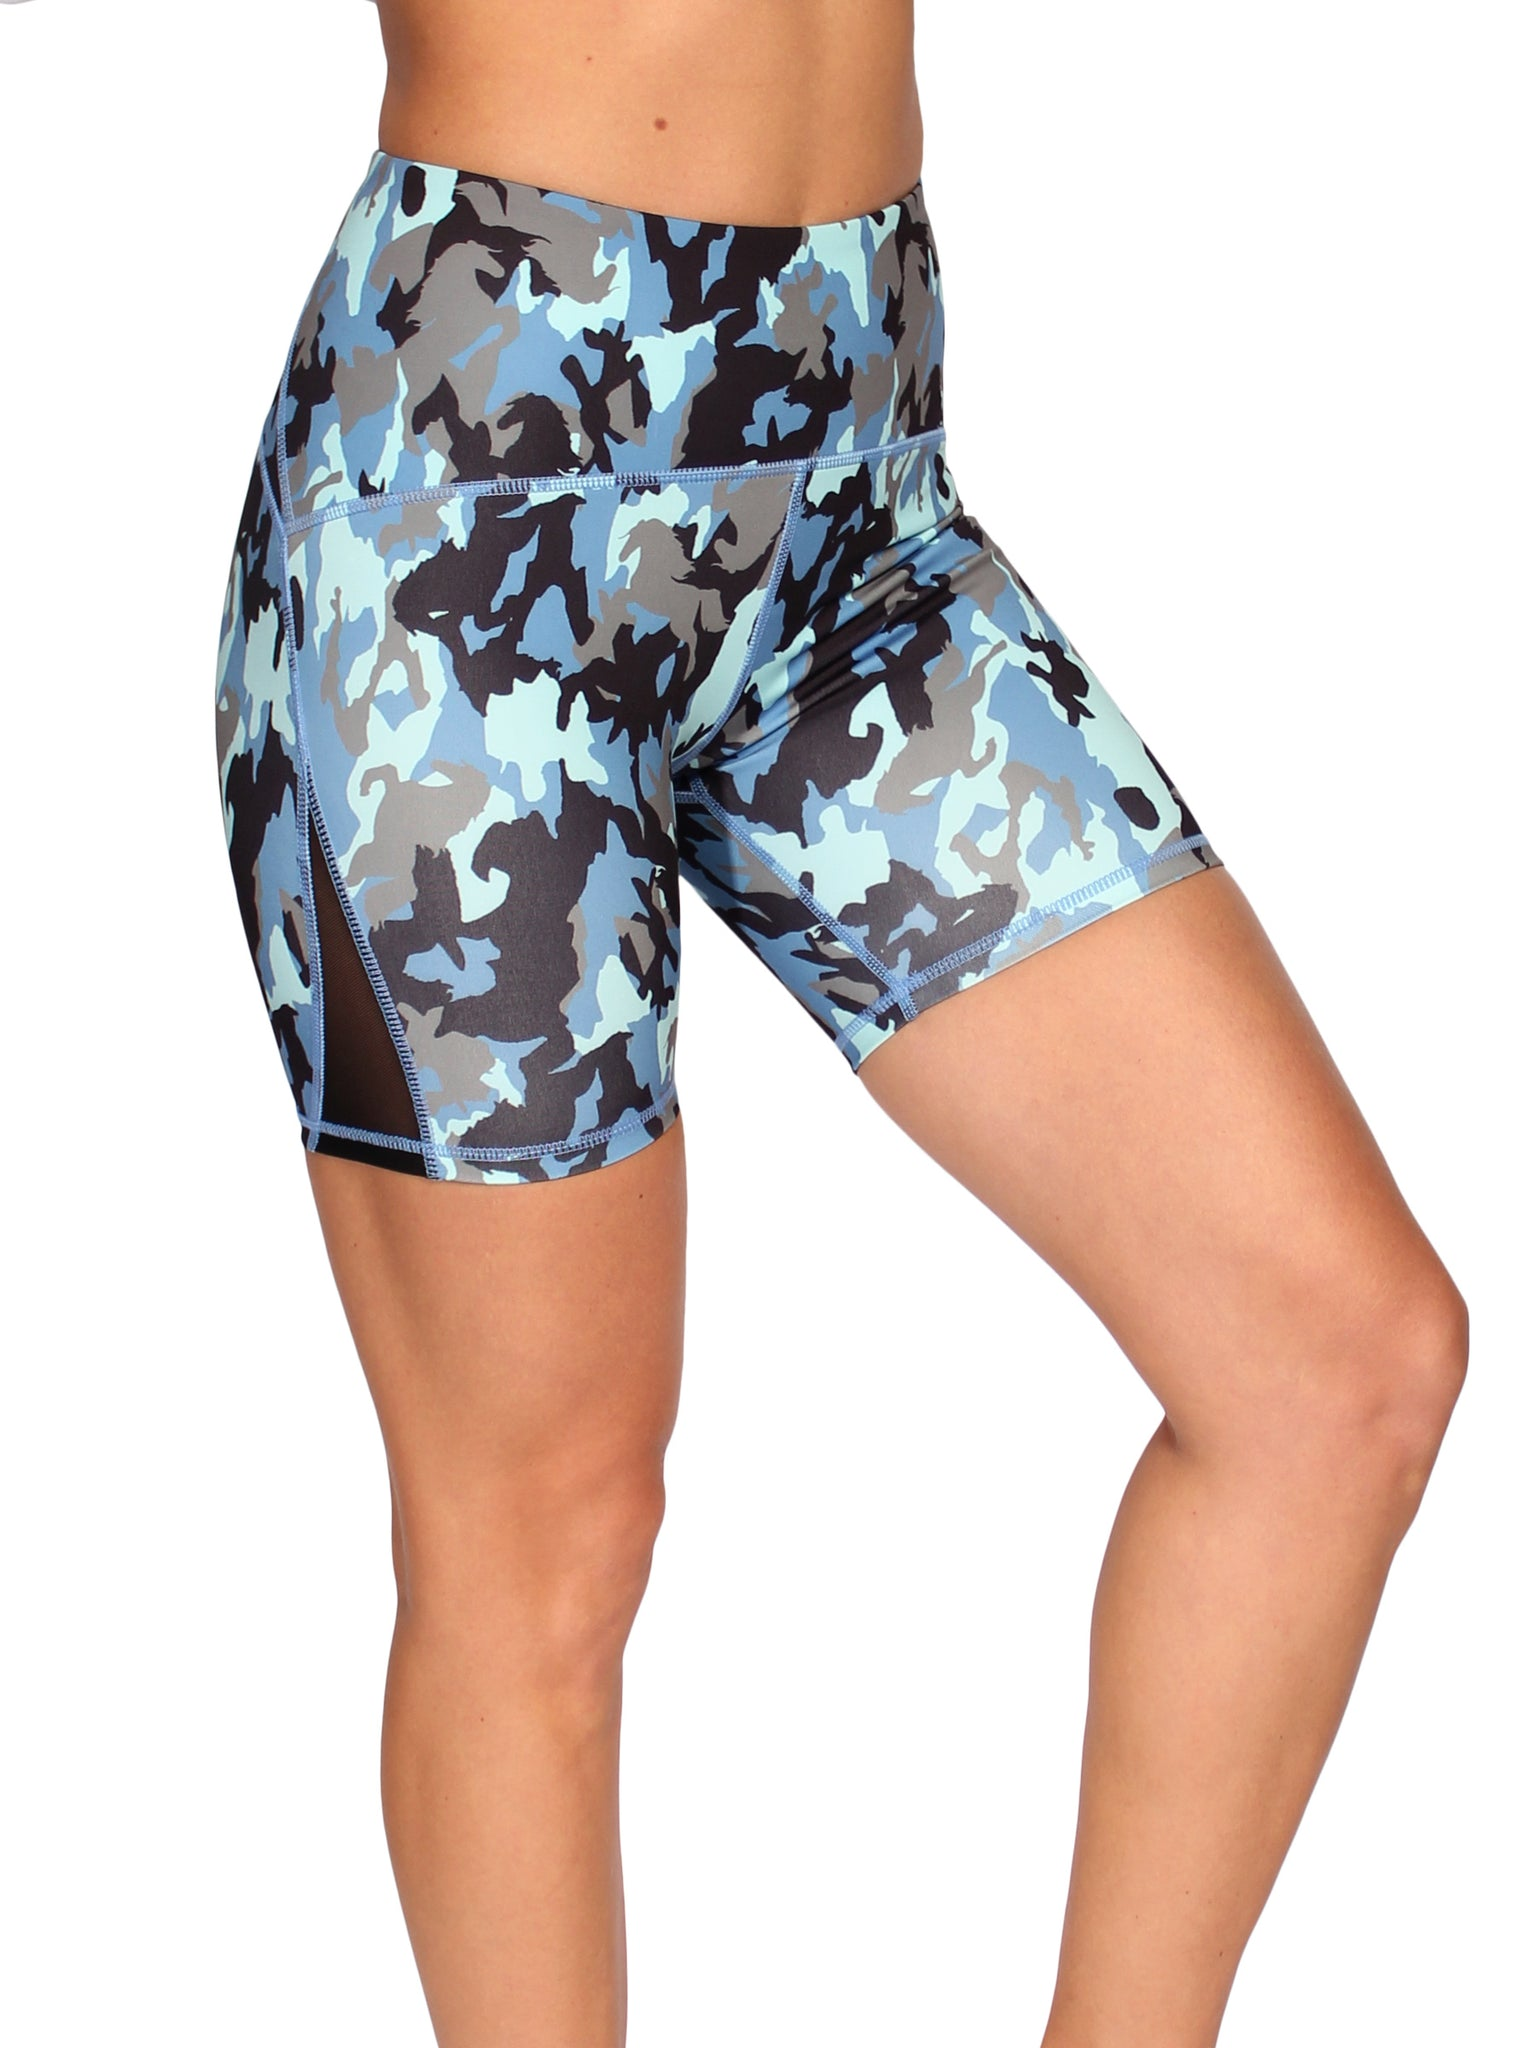 RACER SHAPER HIGH WAIST BOOTY SHORTS - BLUE